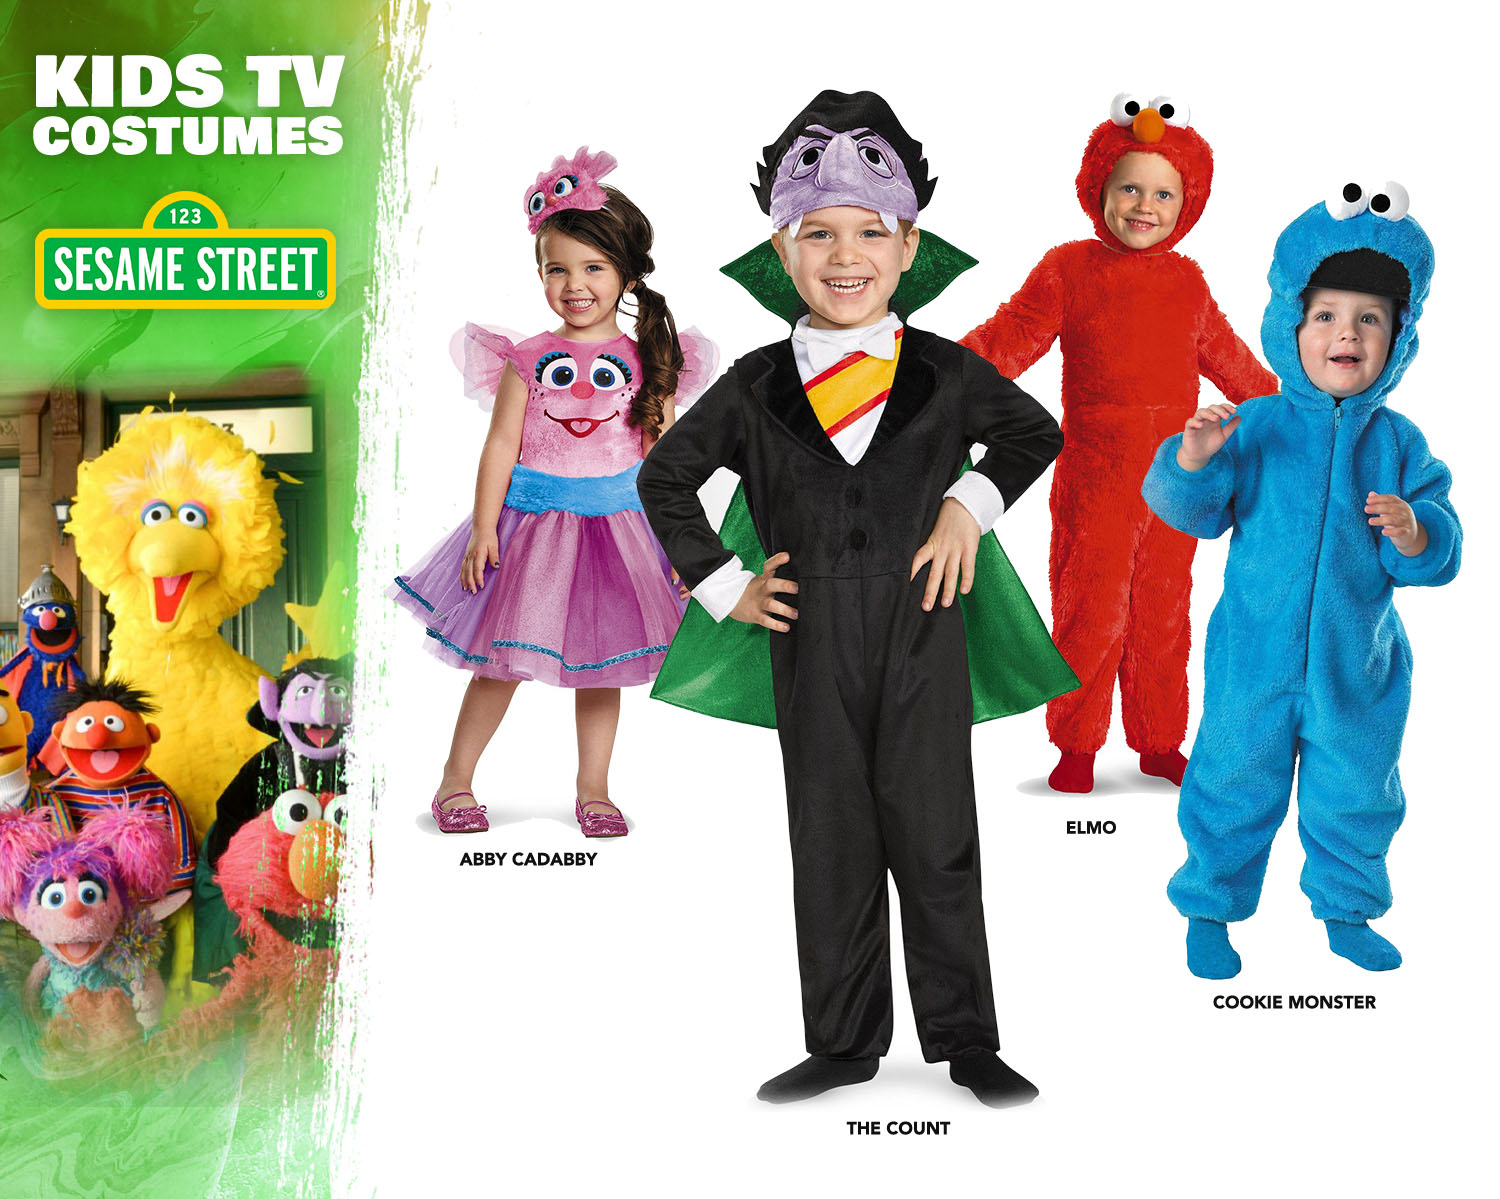 Sesame Street Costume Ideas